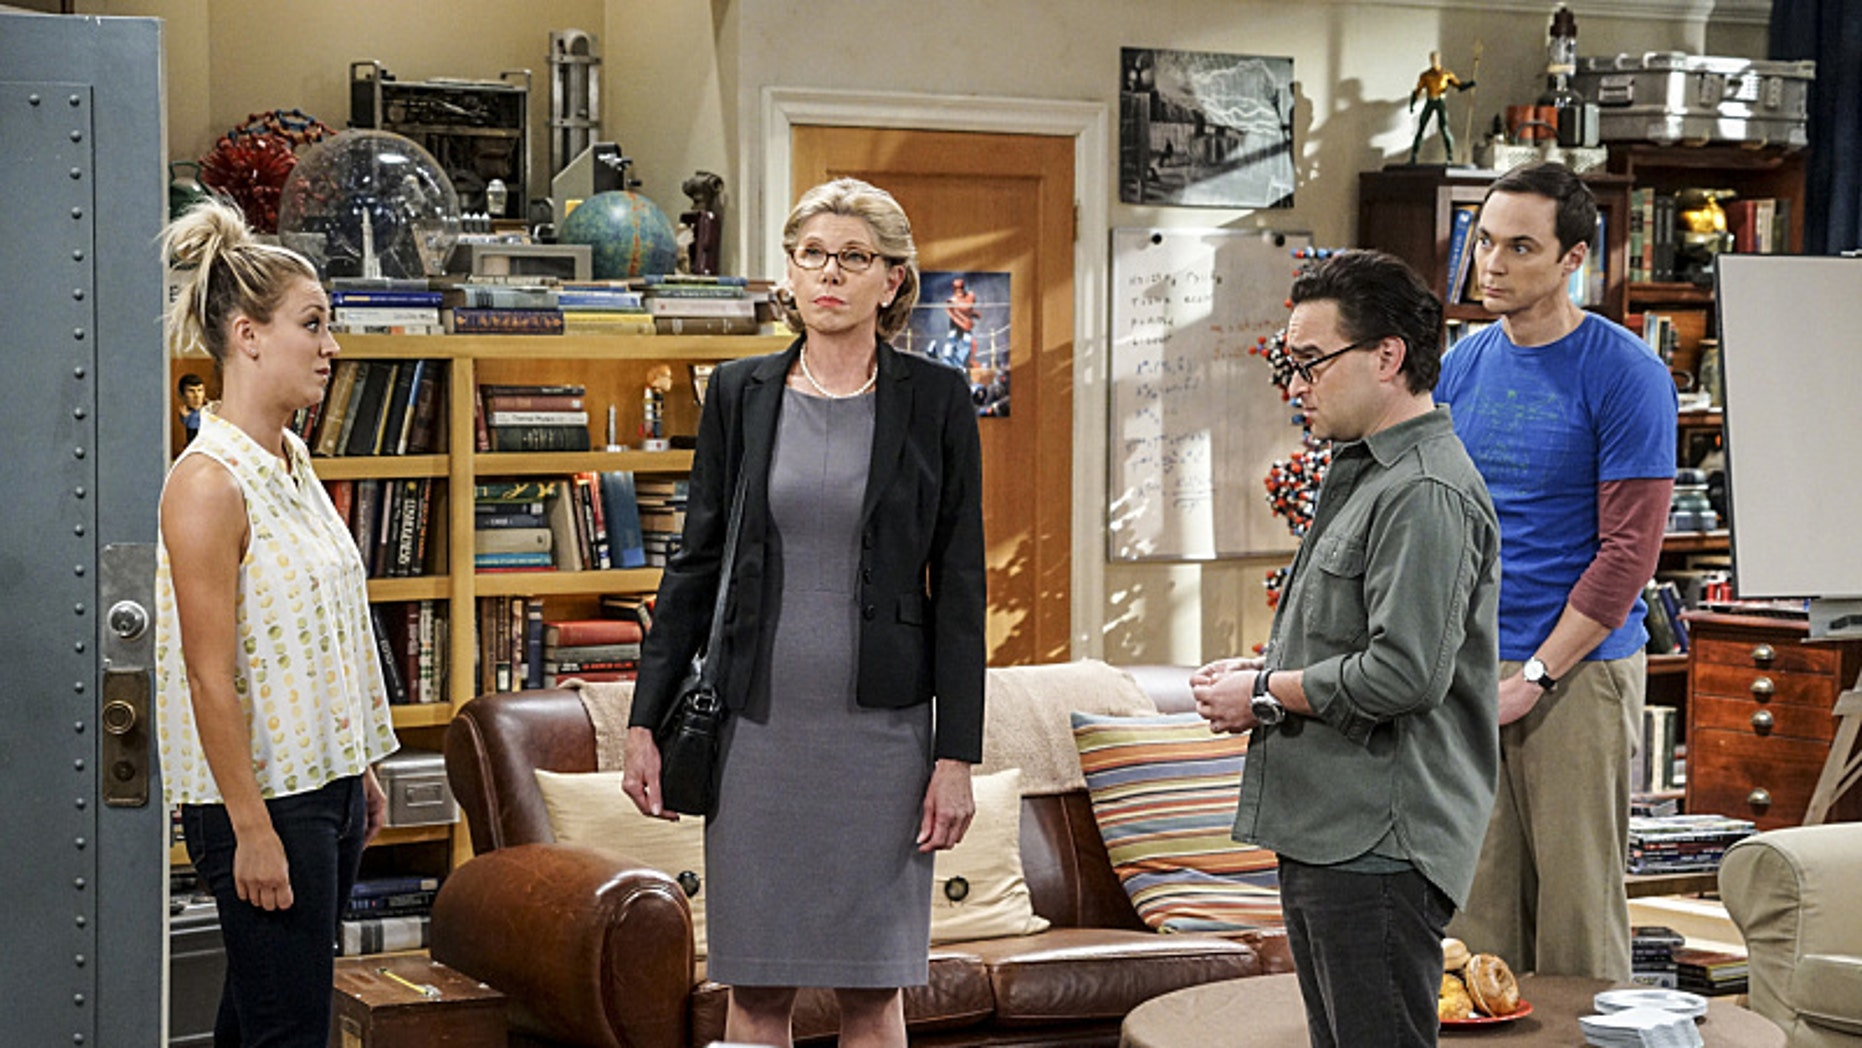 Pictured: Penny (Kaley Cuoco), Beverly (Christine Baranski), Leonard Hofstadter (Johnny Galecki), and Sheldon Cooper (Jim Parsons).